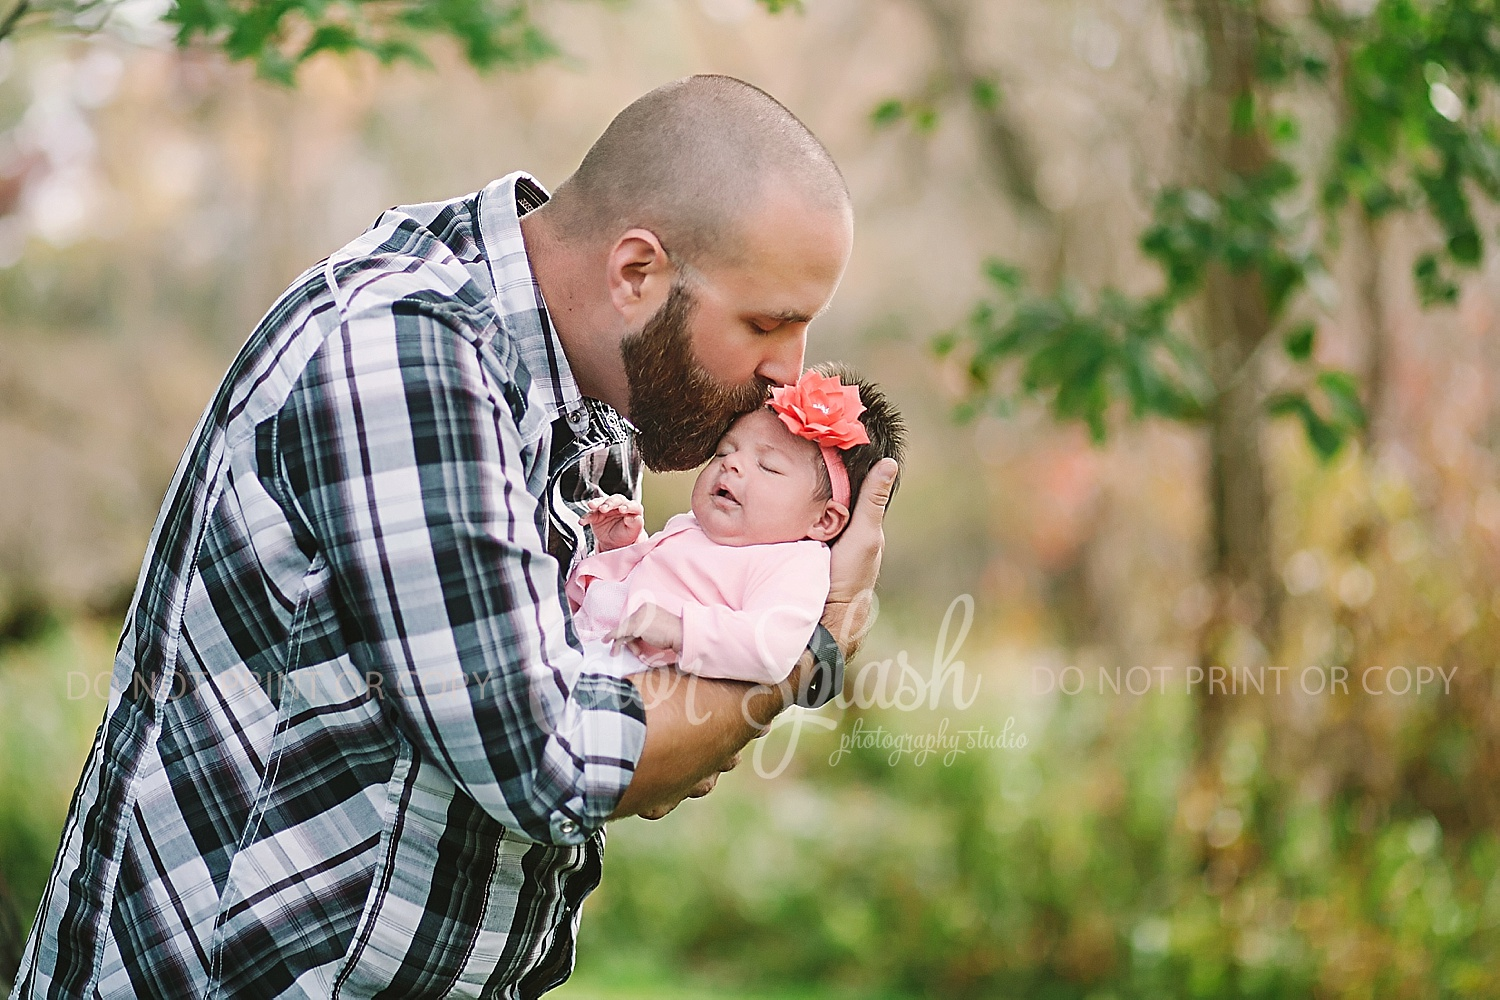 kalamazoo-mi-newborn-photographer_1159